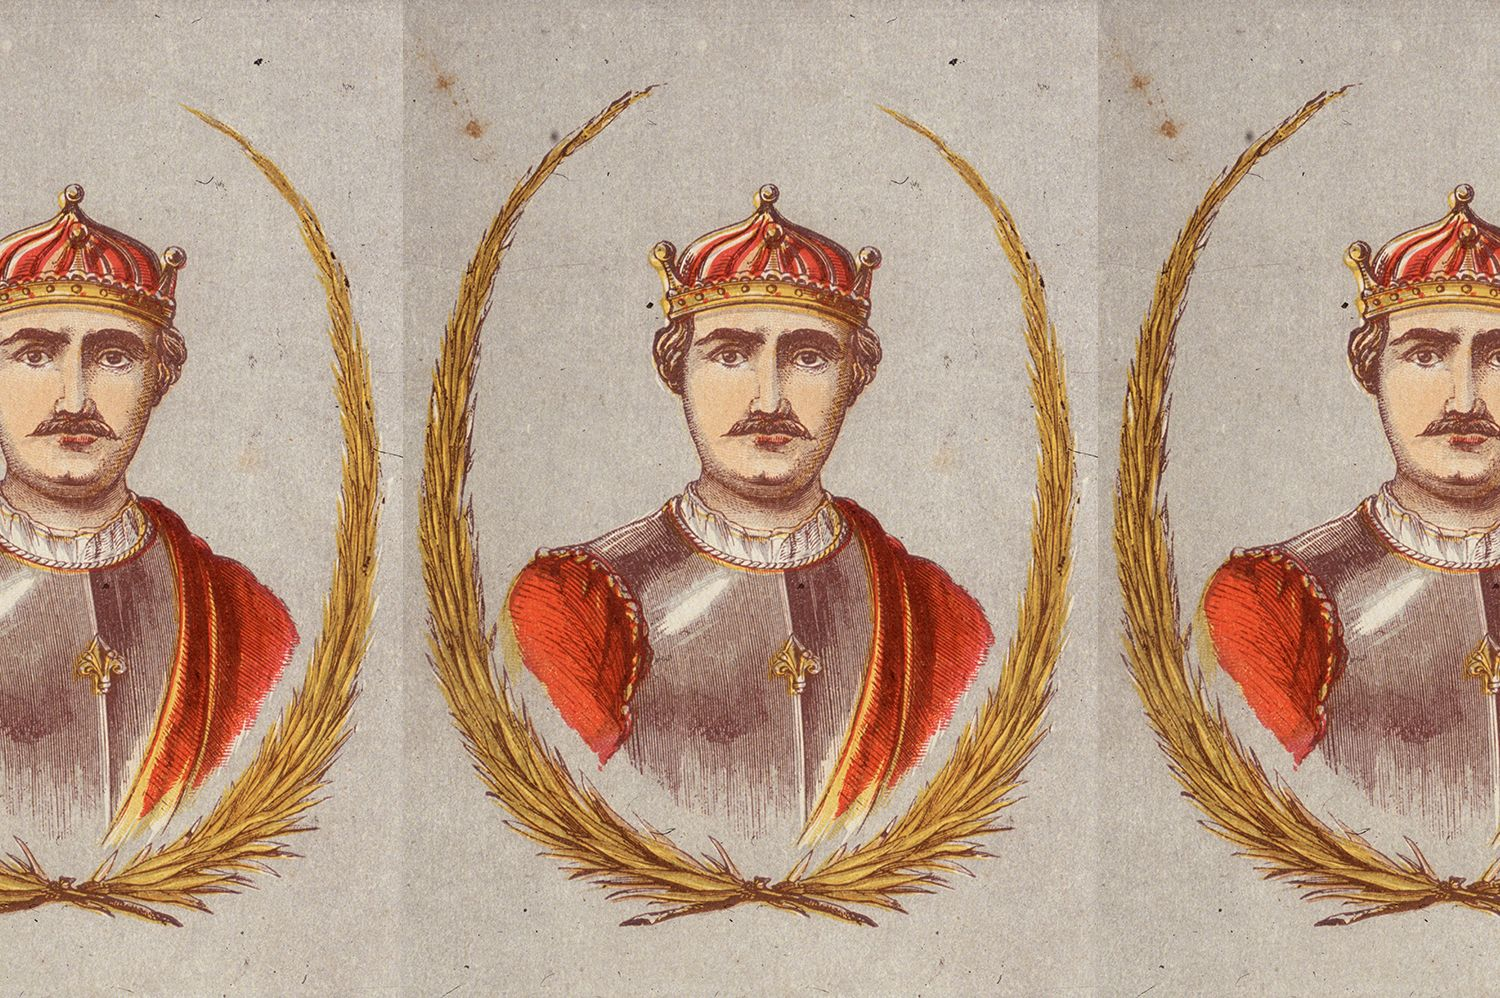 83facb6c5 The British King Whose Corpse Exploded During His Funeral | Mental Floss